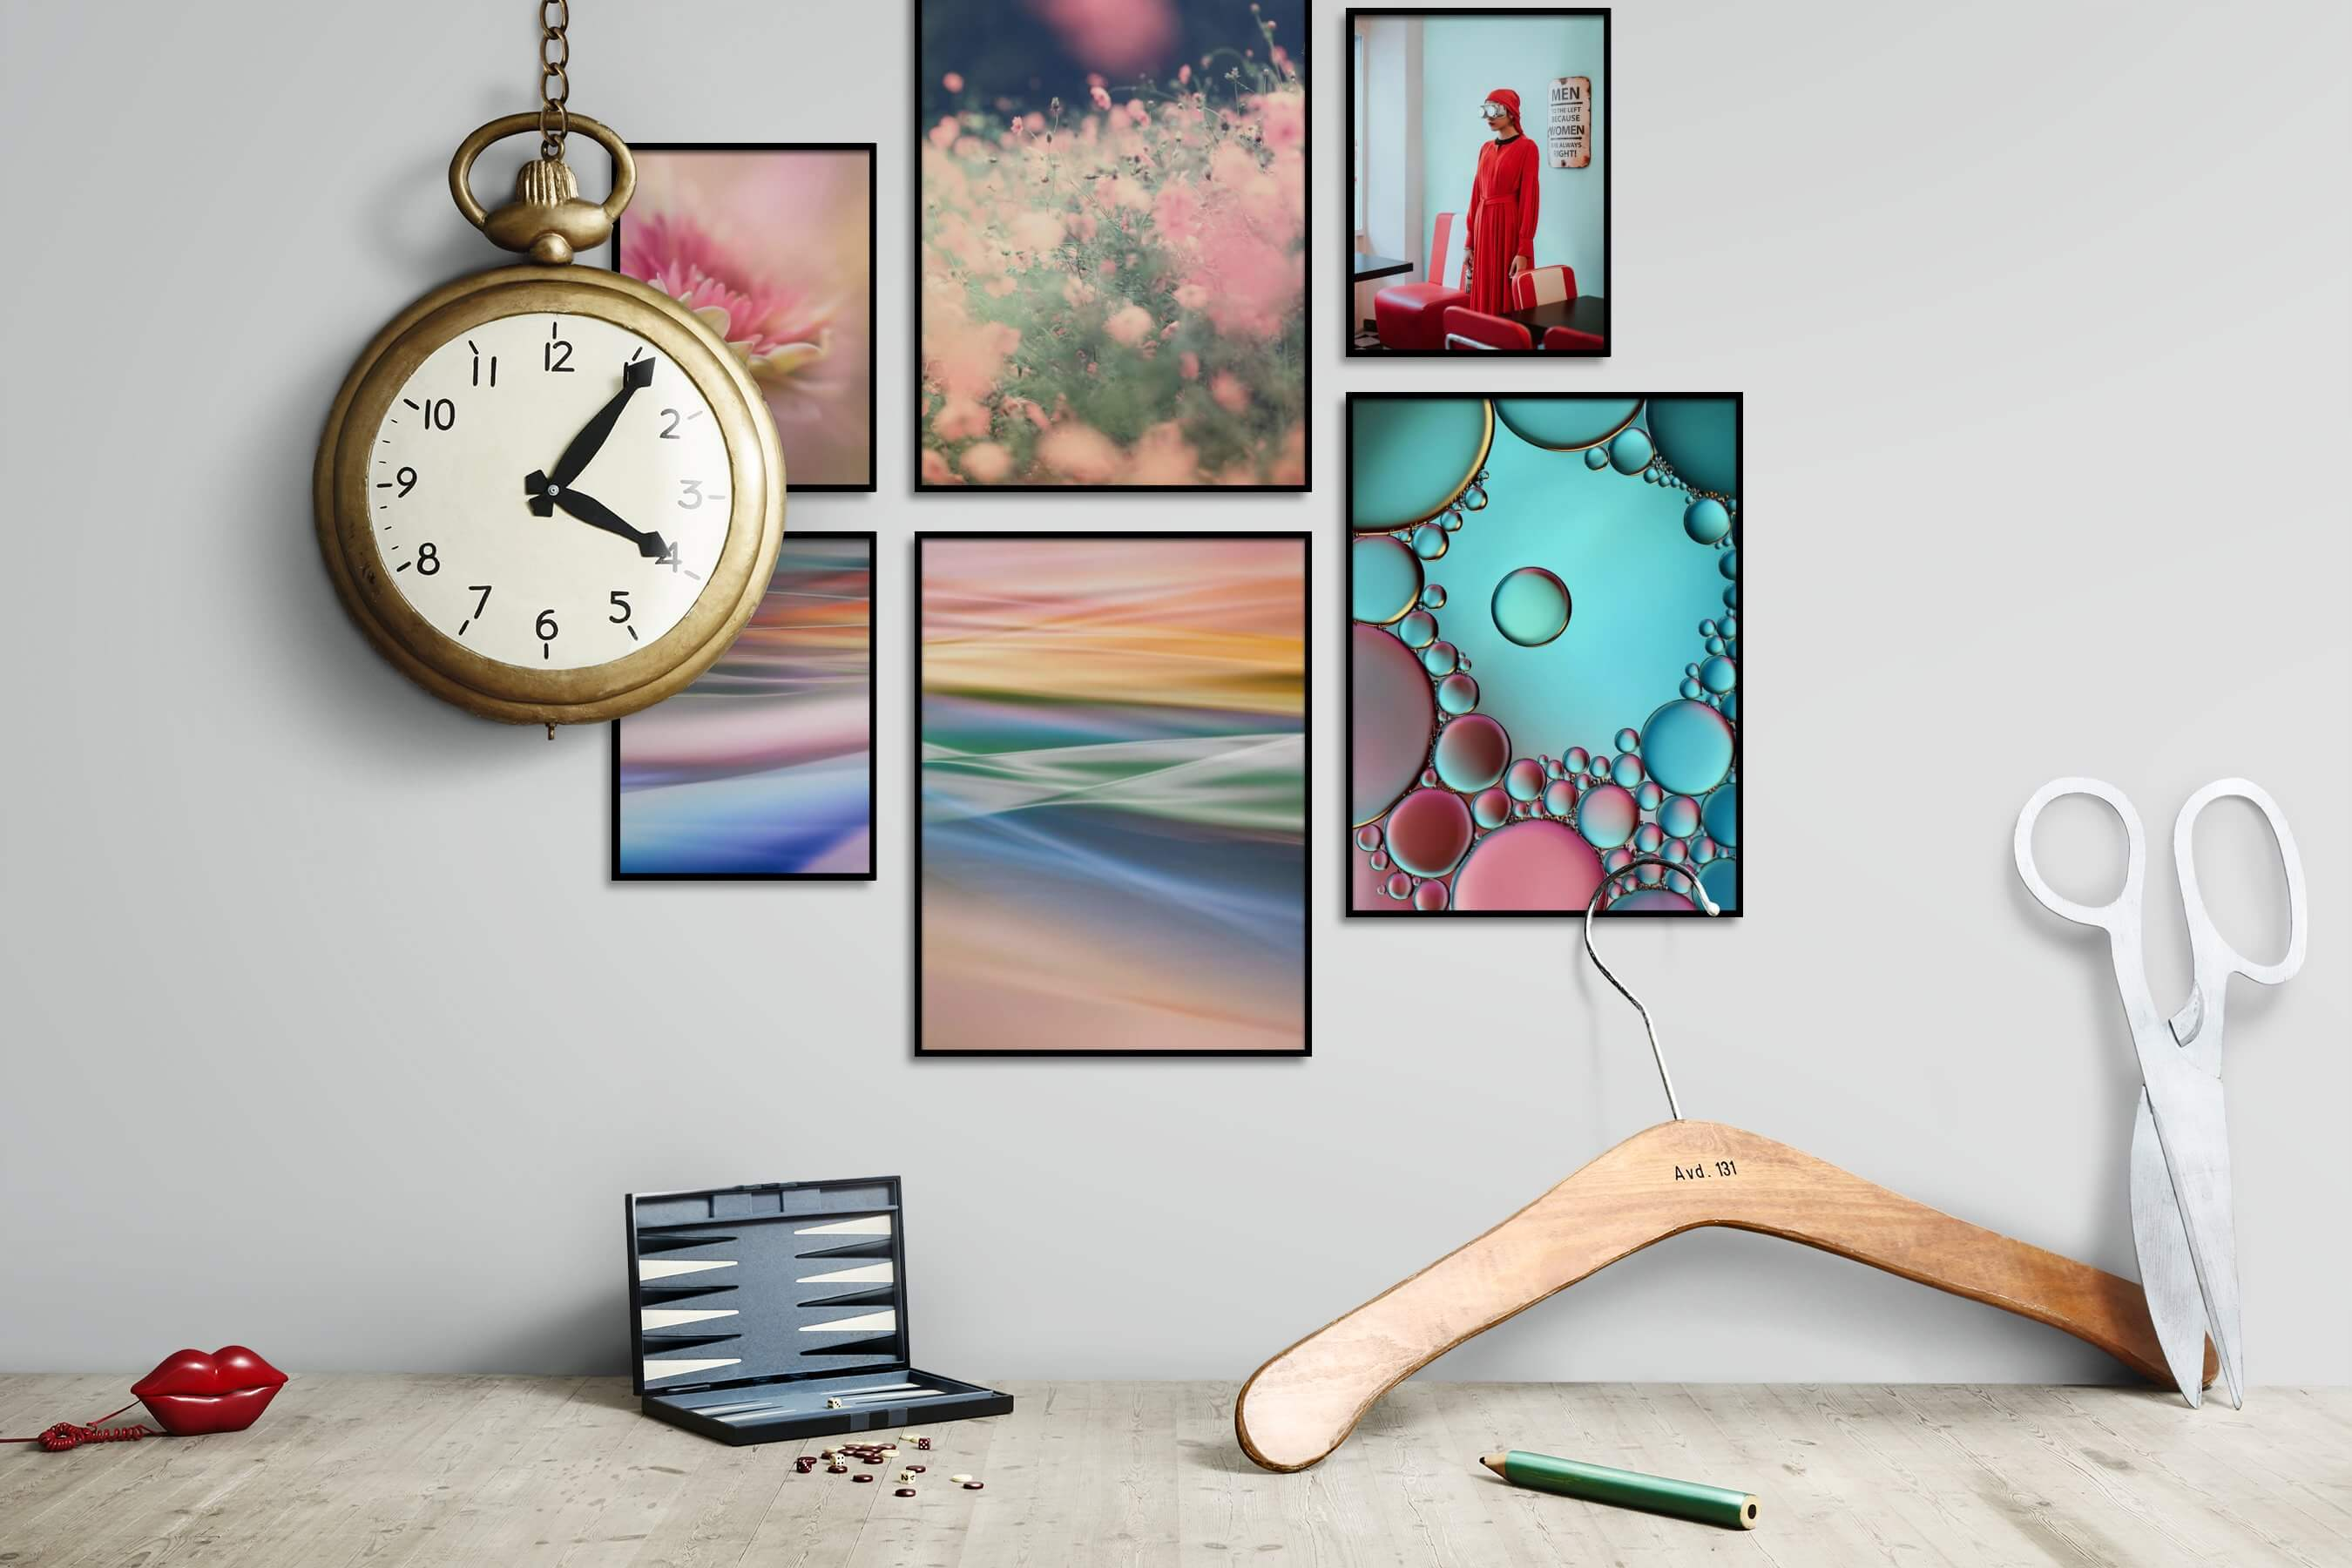 Gallery wall idea with six framed pictures arranged on a wall depicting Flowers & Plants, Mindfulness, Colorful, For the Moderate, Artsy, and Vintage